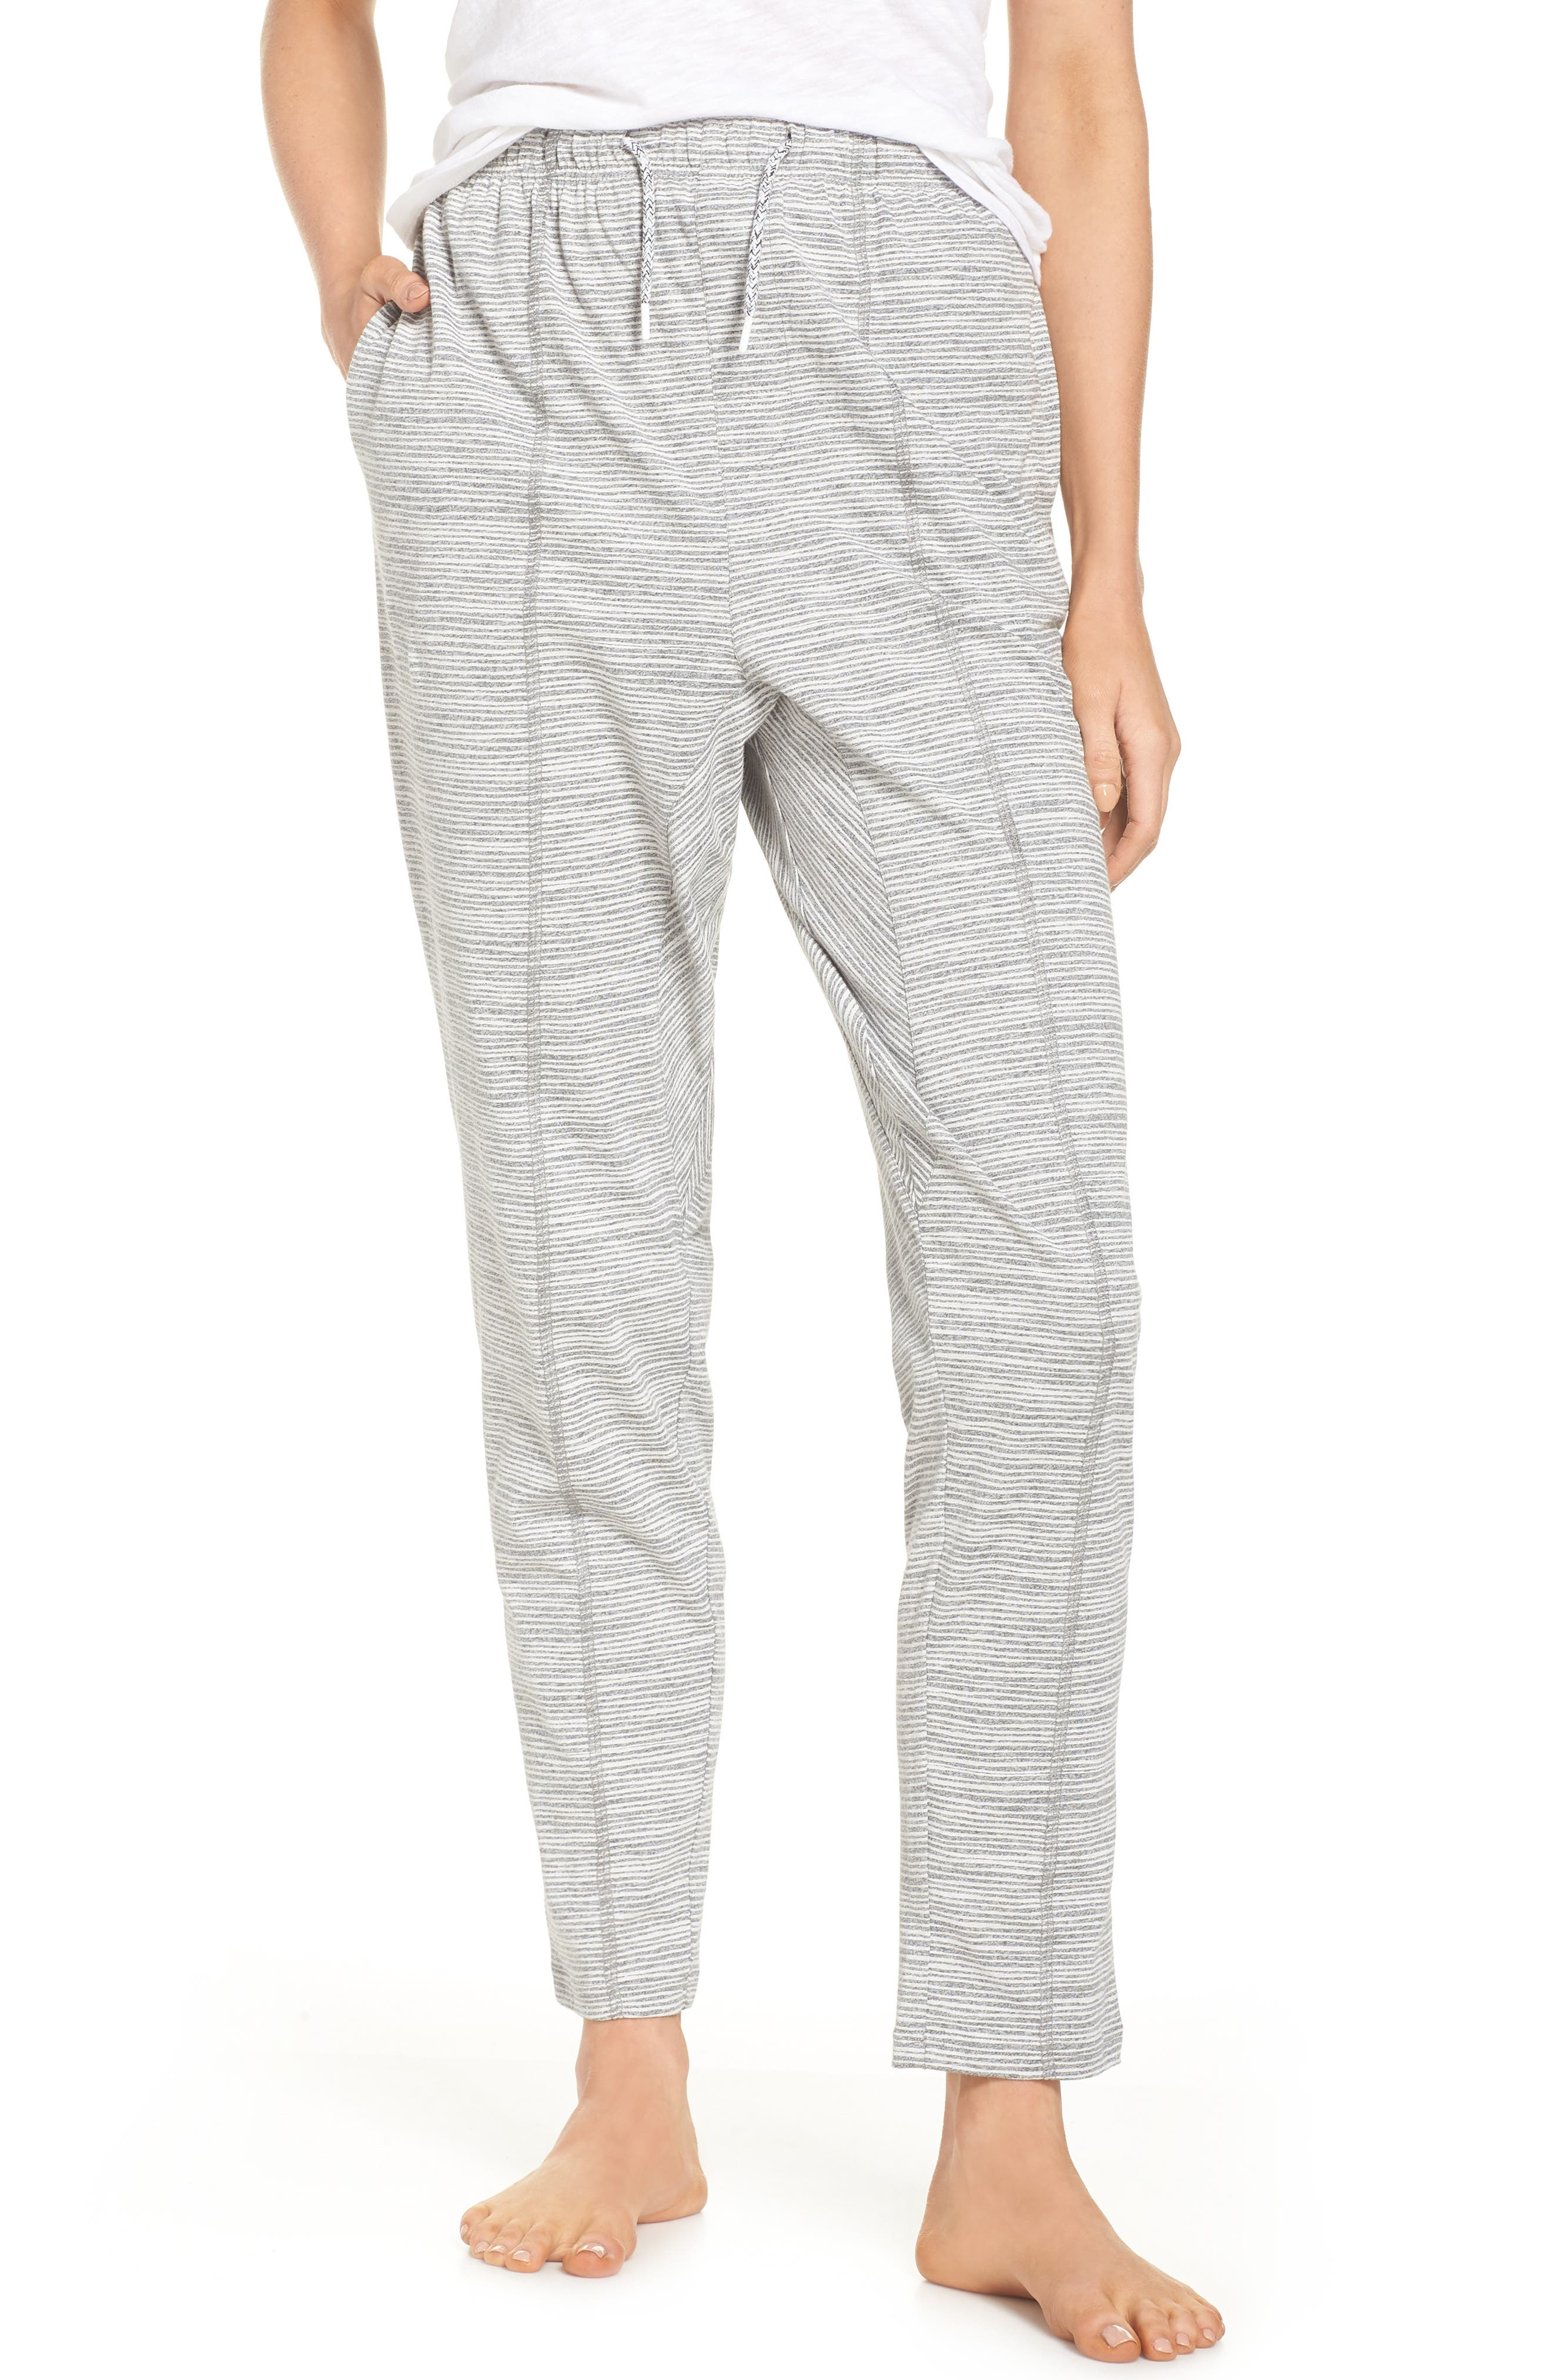 Ash Stripe Lounge Pants,                             Main thumbnail 1, color,                             Ash Marle Stripe